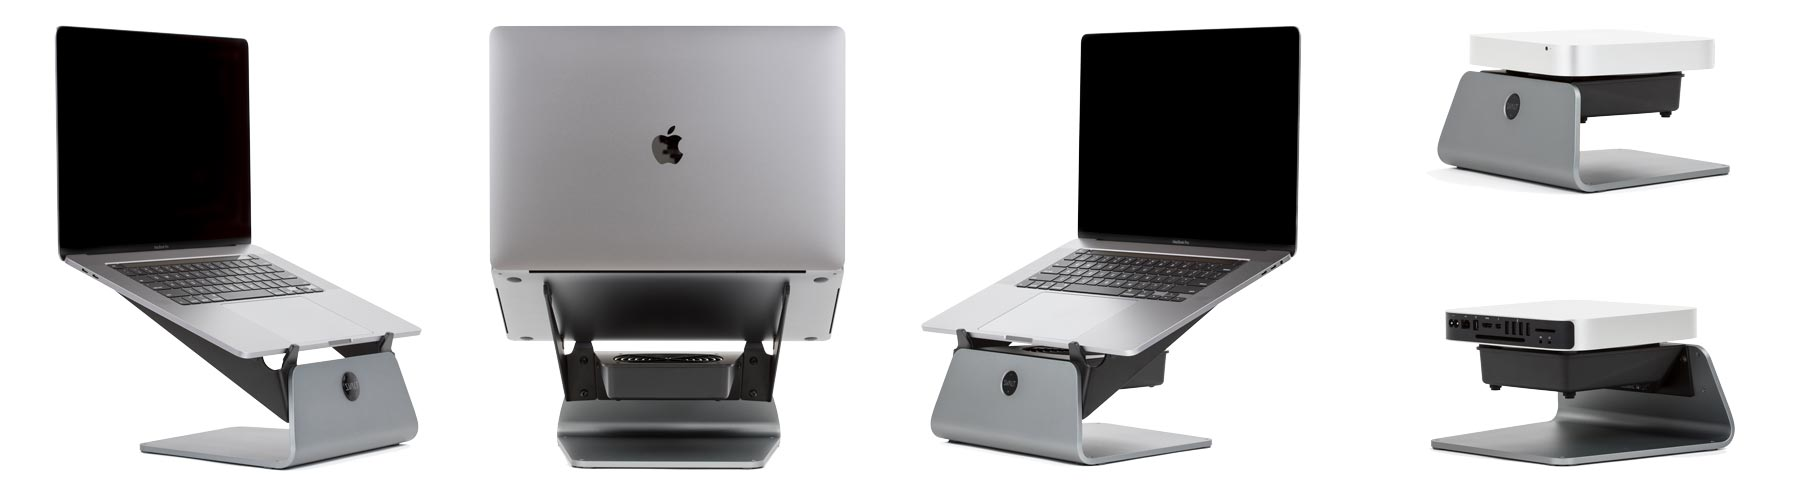 SVALT Cooling Stand models S and S Pro with 16-inch MacBook Pro and model S Mini with Mac Mini